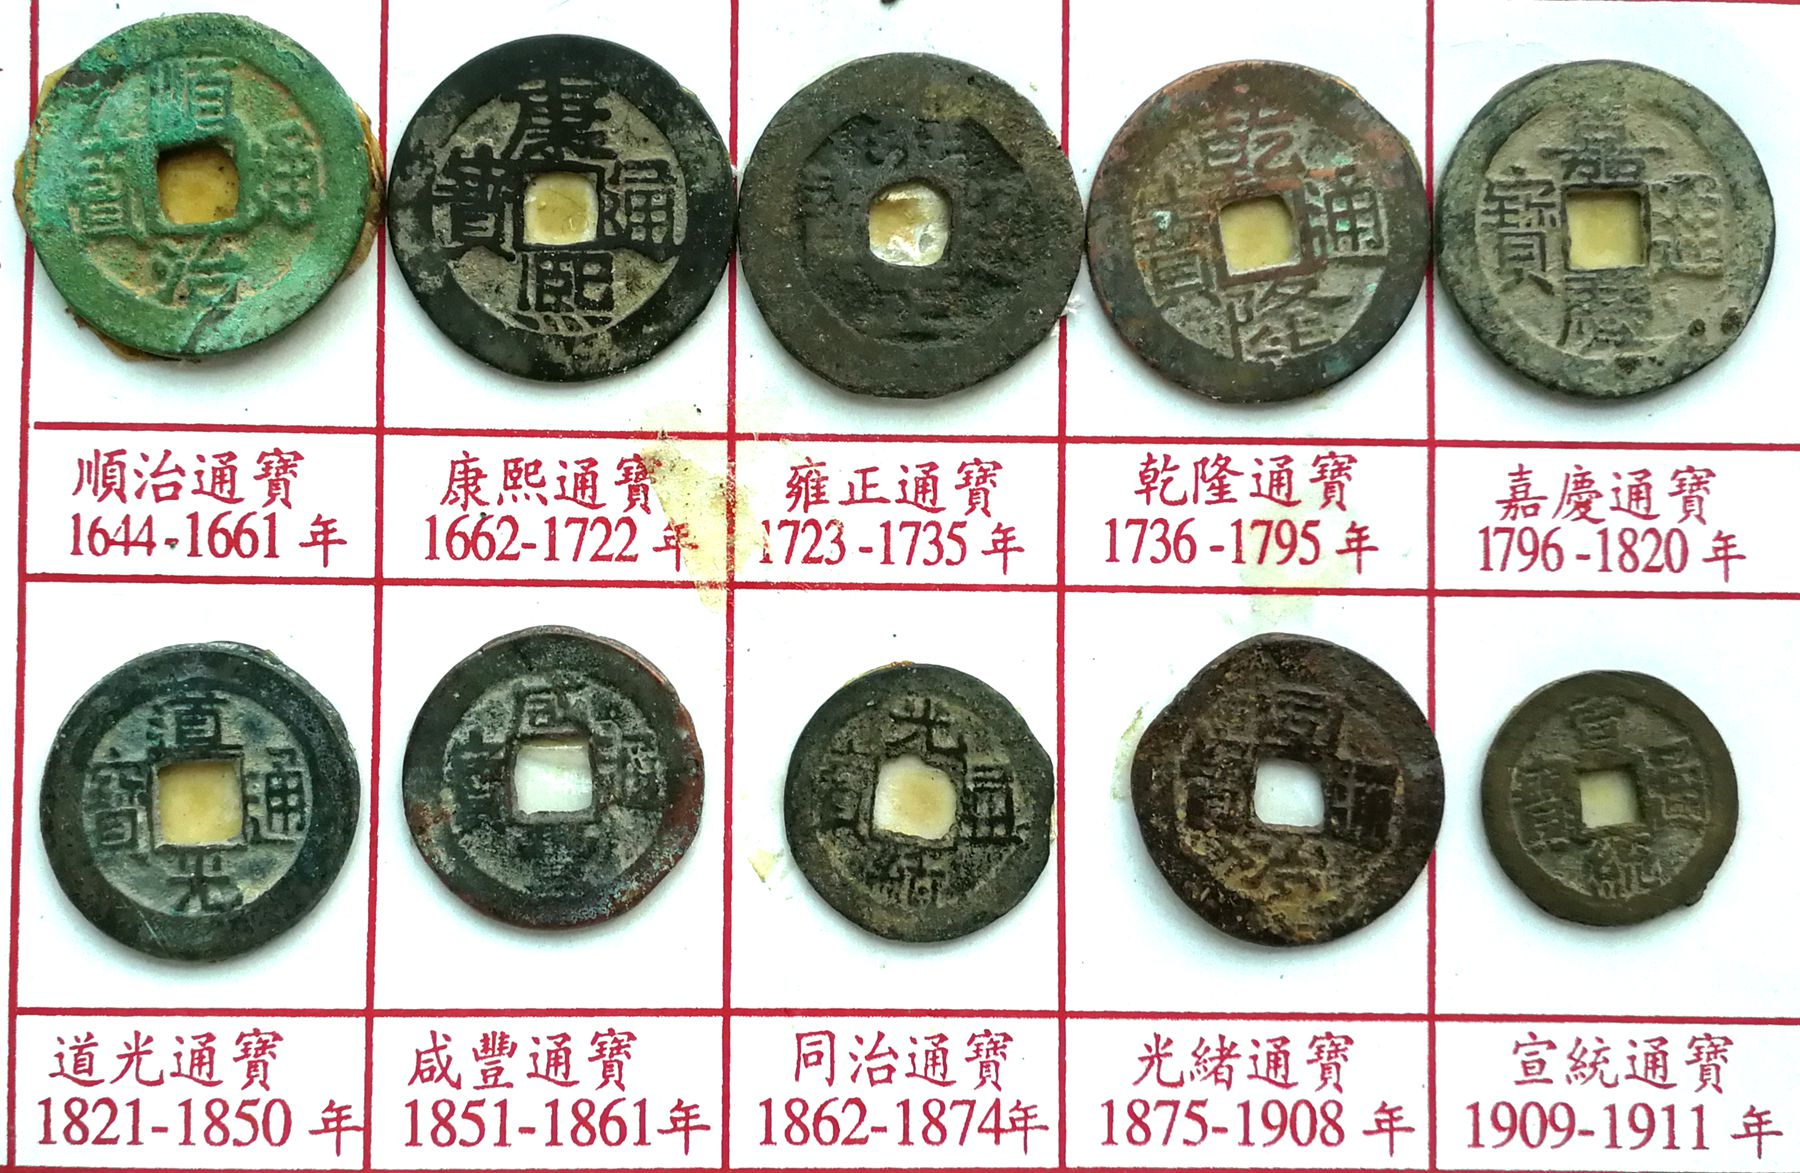 10 Pcs China Coins Ancient Qing Dynasty Emperors Copper Currency Antique History